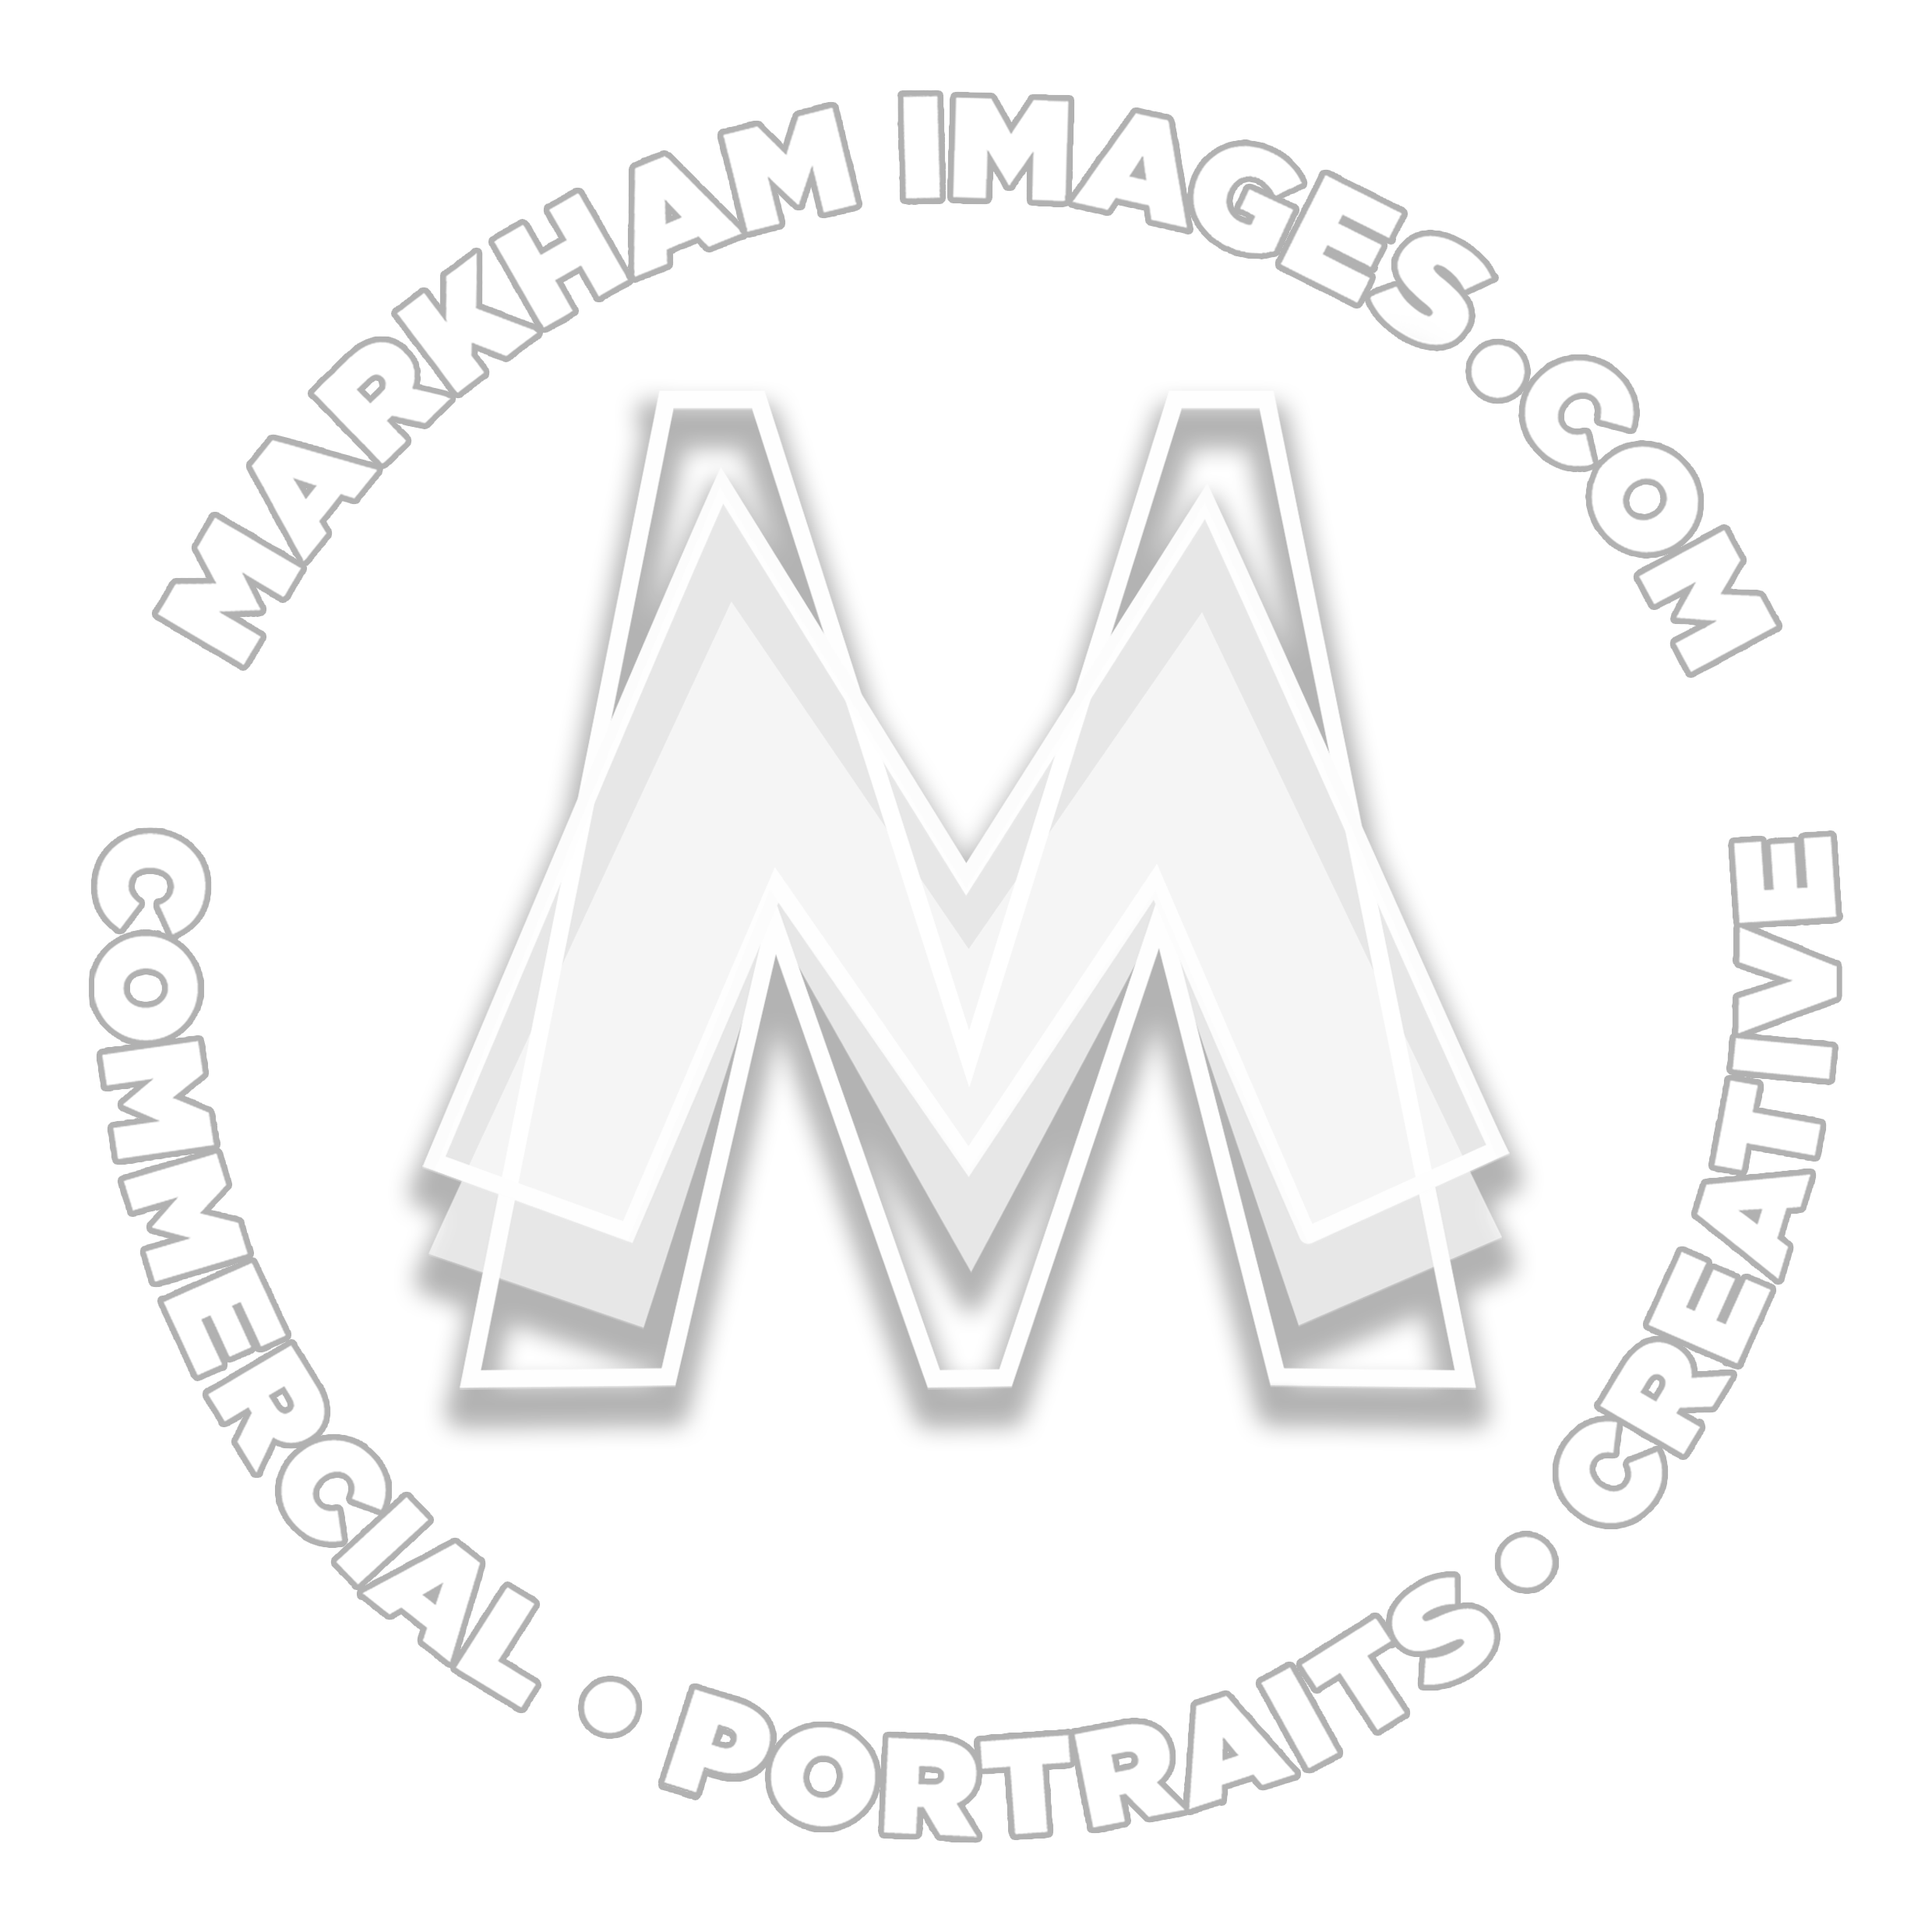 The logo for Markham Images is a three-layer M symbol in white surrounded by bold white text in a circular formation, with the website address detailed at the top, and the three words describing the services at the bottom, being commercial, portraits, and creative. In the background a full colour spectrum wheel emanates from the centre point out to the edges of the logo container. The Markham Images logo is a working trademark for M Visions Au Pty Ltd ABN 77 091 248 663, since 2010. A no-background version of the three-layer M symbol surrounded by bold white text is also used as a copyright watermark displayed on copyright photographs of photographer Markham Lane.